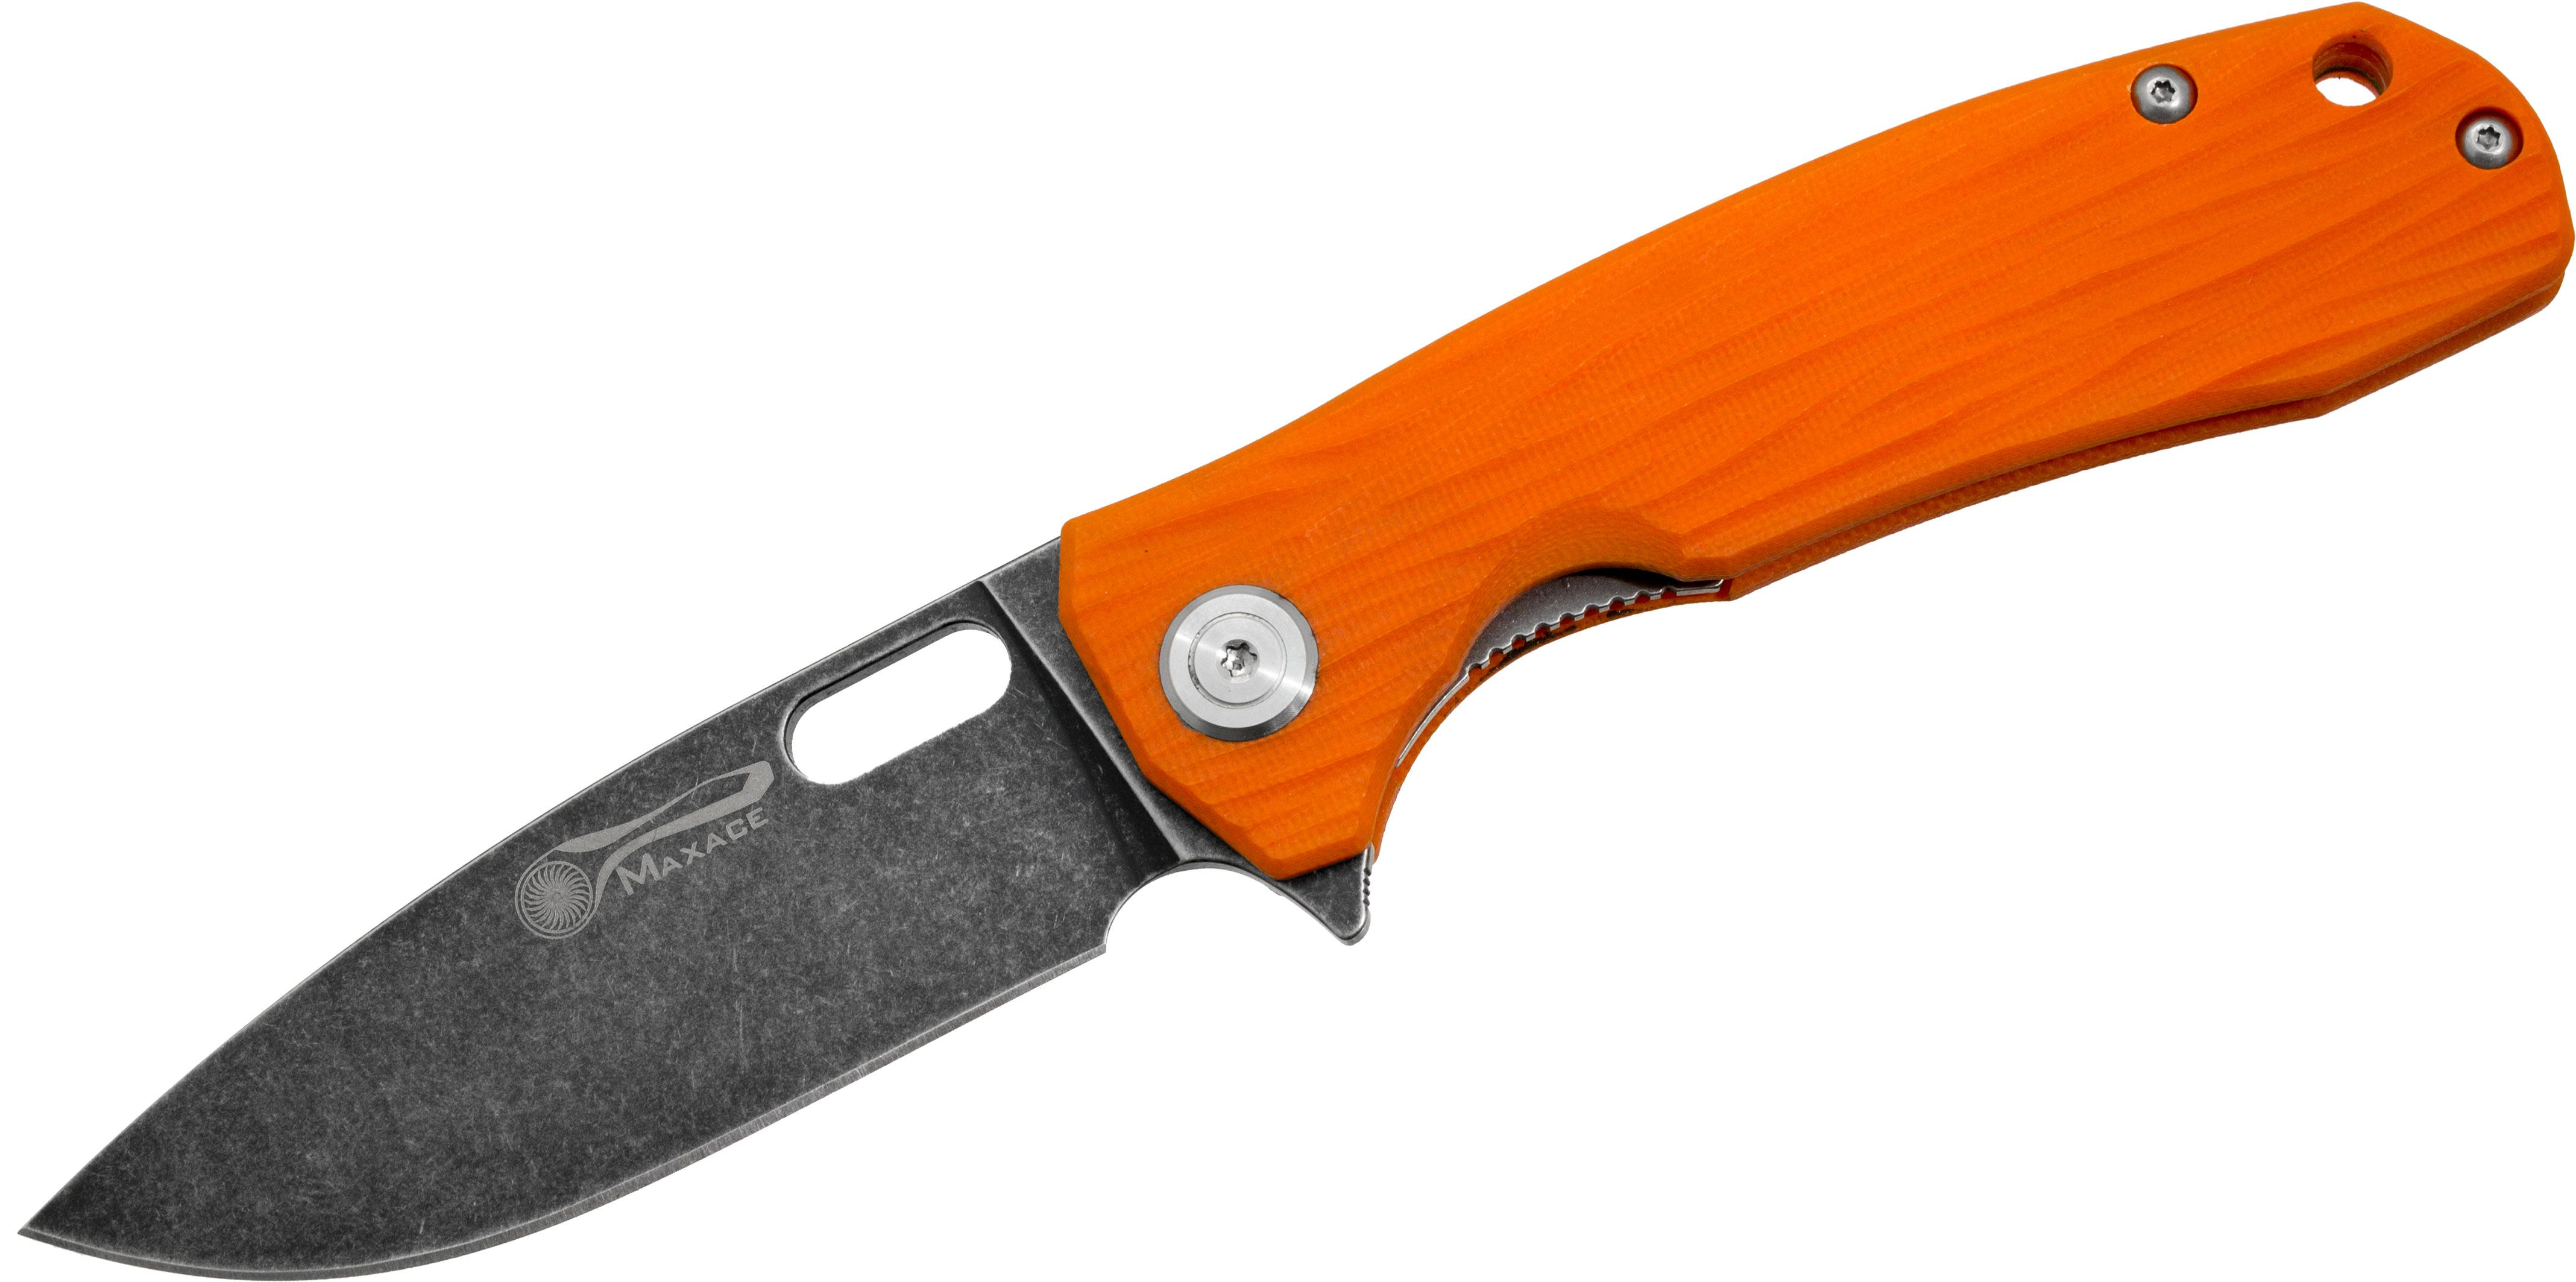 Maxace Knives Balance Flipper 3.54 inch S35VN Black Stonewashed  Plain Blade, Orange G10 Handles